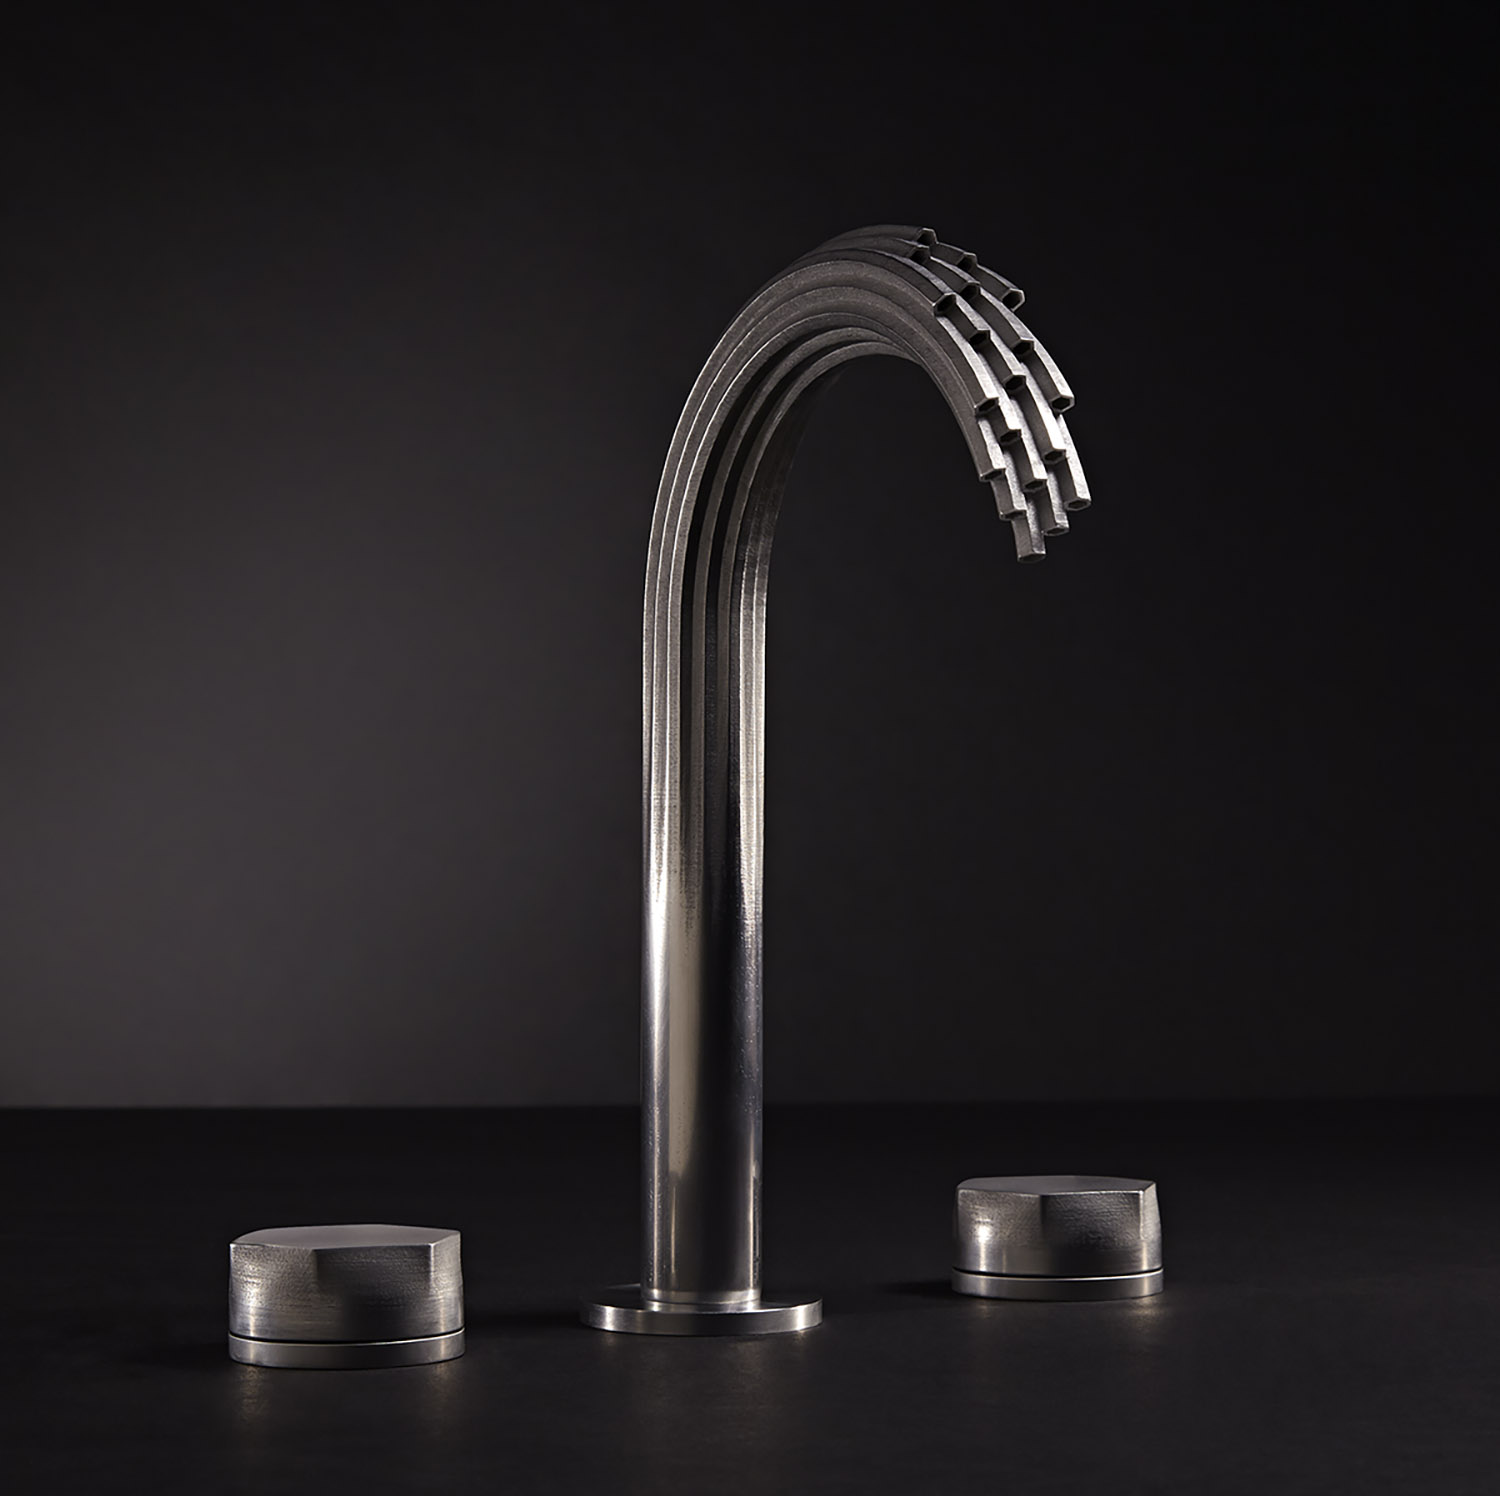 Fact Sheet: 3D Printed Faucets from DXV by American Standard